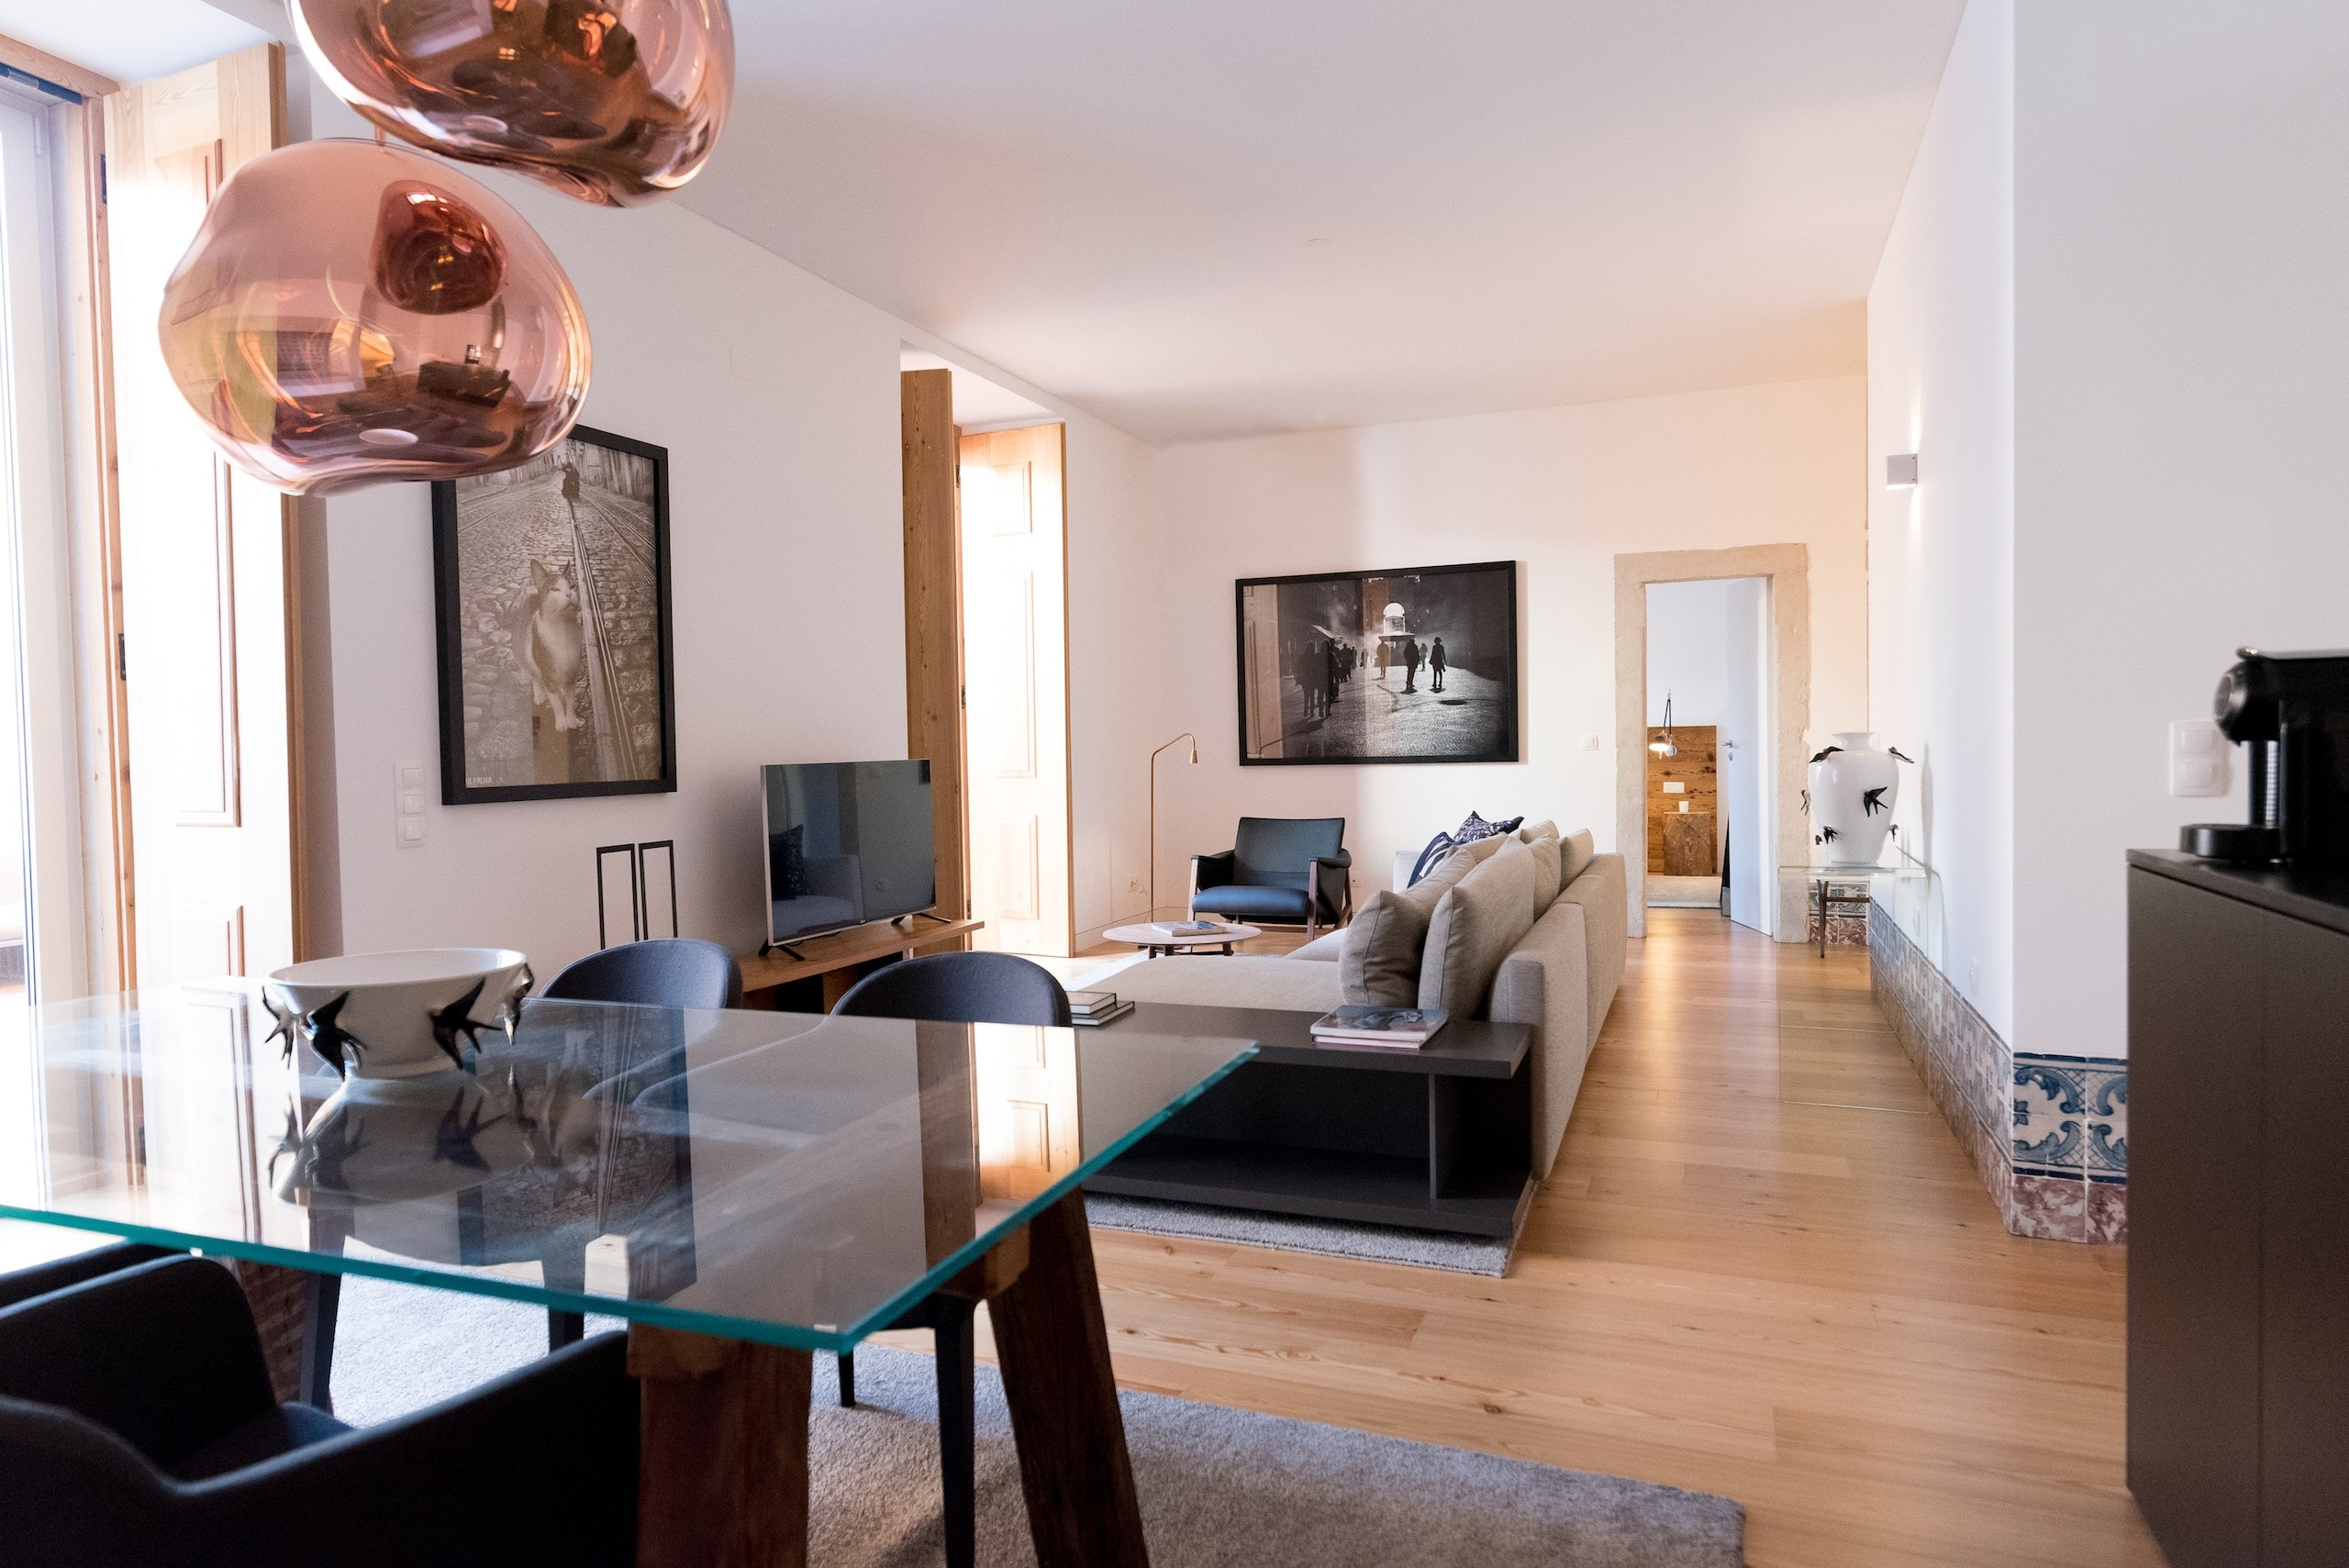 Property Image 2 - Contemporary Apartment in the Centre of Historic Lisbon